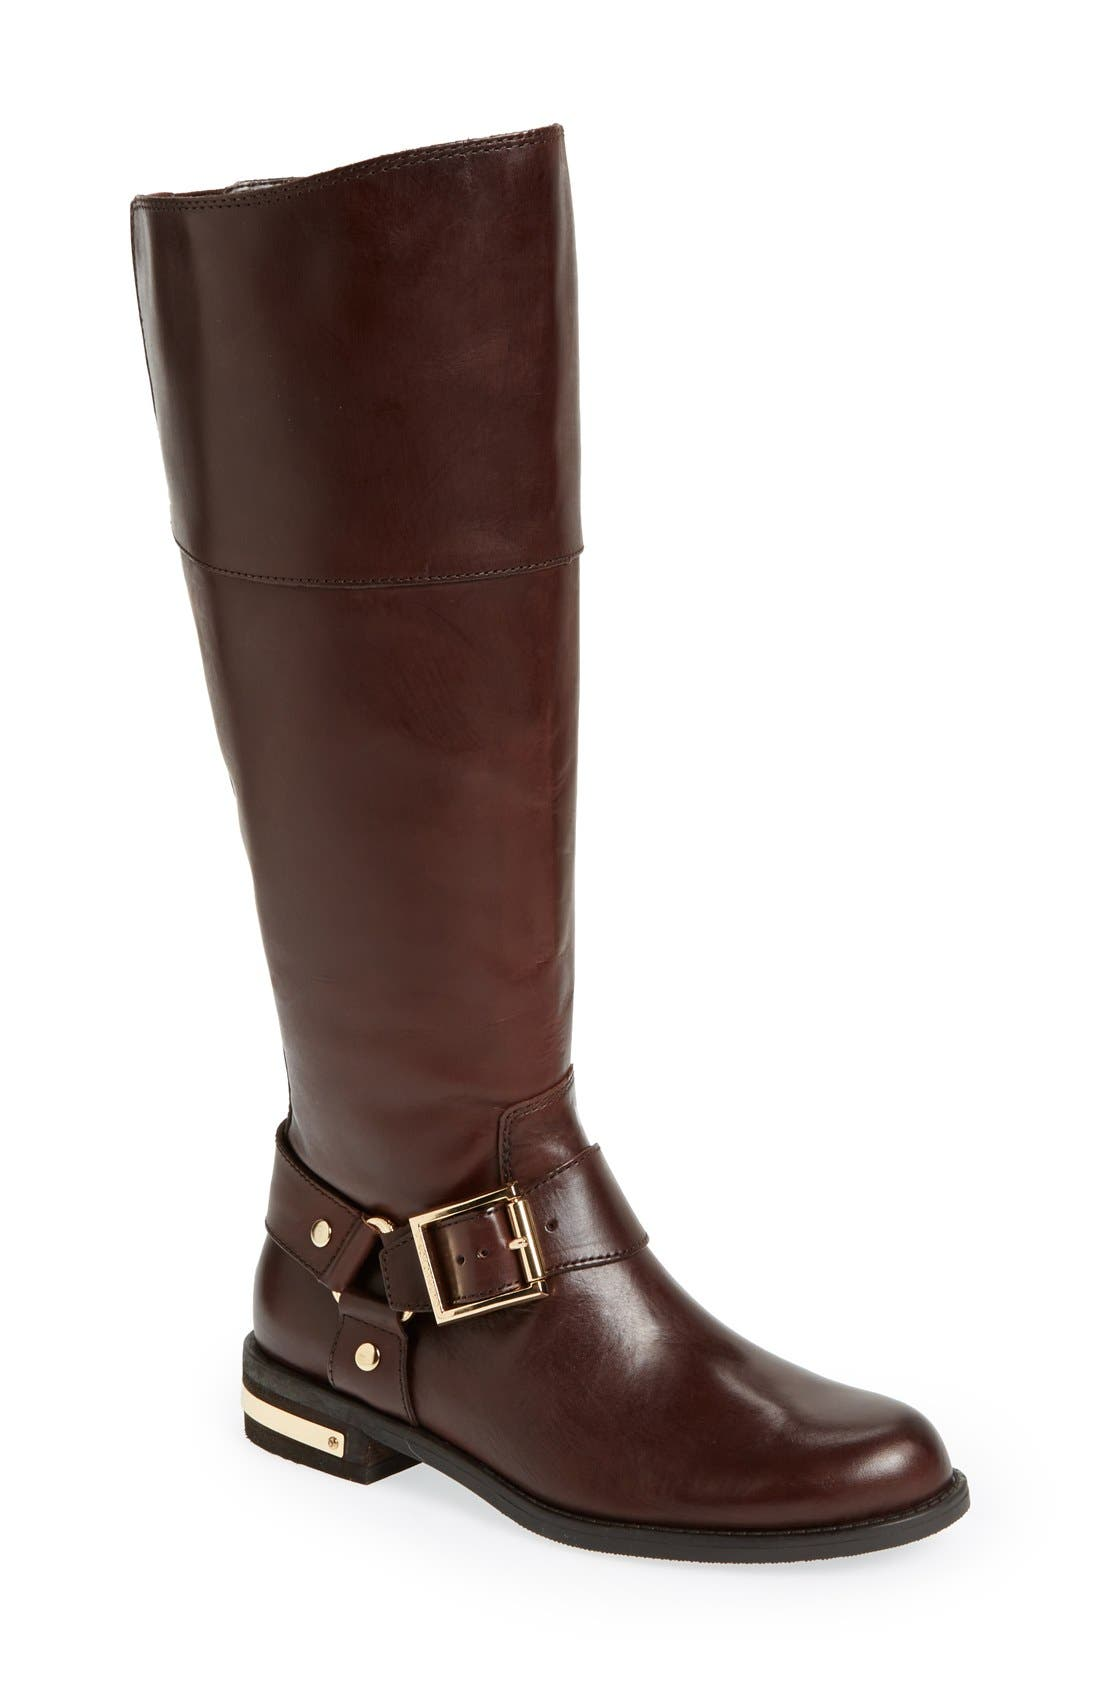 Alternate Image 1 Selected - Vince Camuto 'Kallie' Leather Riding Boot (Women)(Wide Calf)